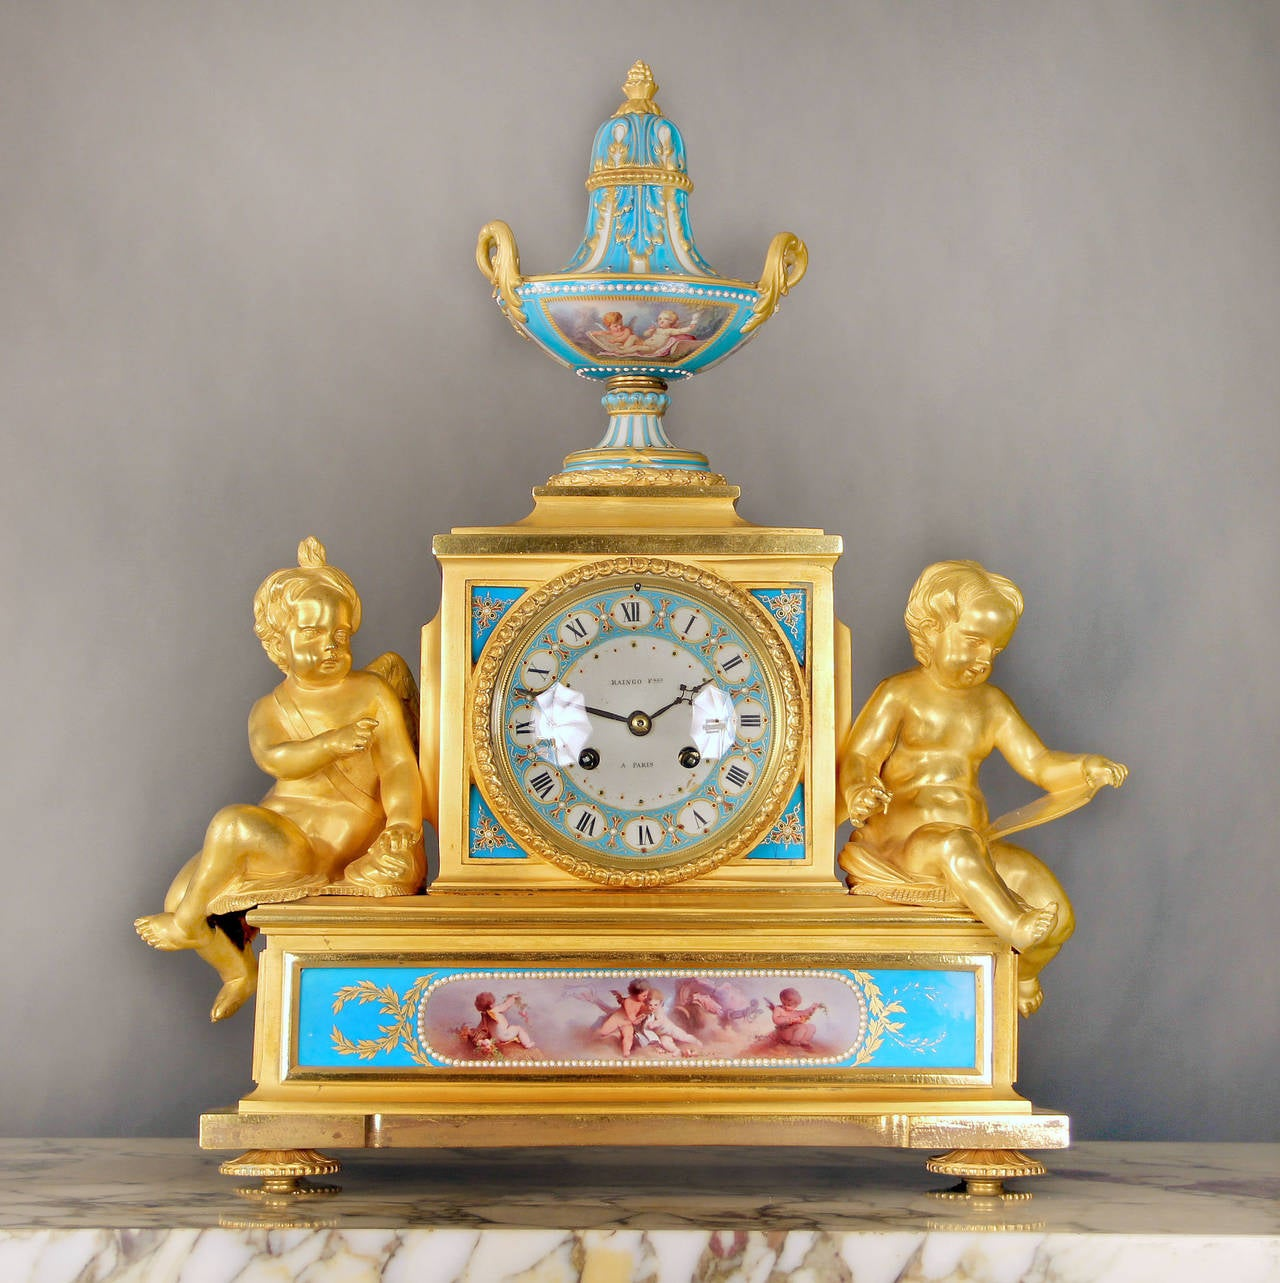 A wonderful and important mid-19th century gilt bronze and turquoise sevres porcelain 'Jeweled' three-piece clock set.  By Raingo Frères.  The clock surmounted by a covered urn with gilt porcelain handles, the clock face signed Raingo Fres A